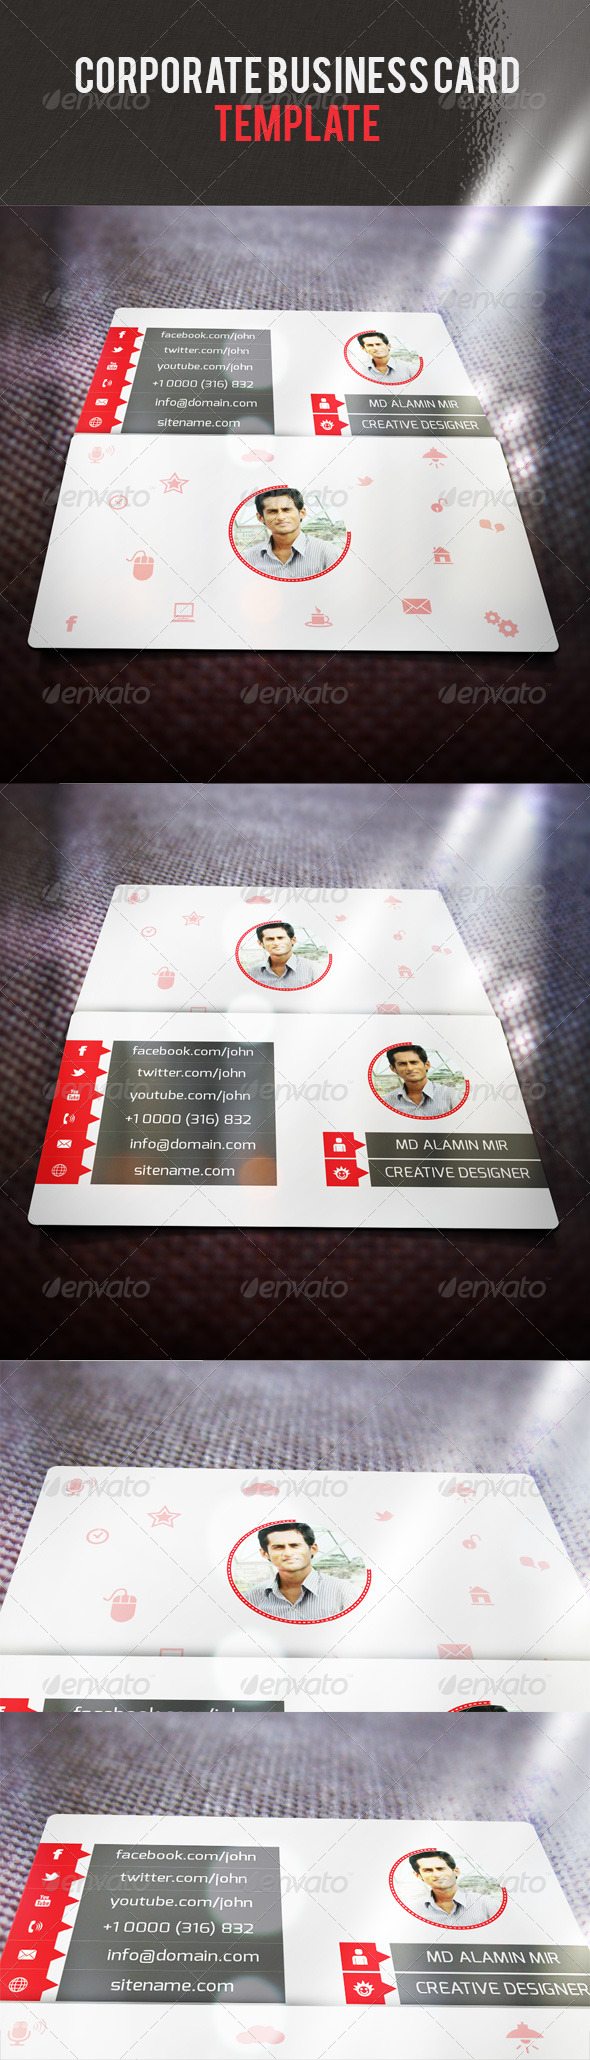 Corporate Business Card V 37